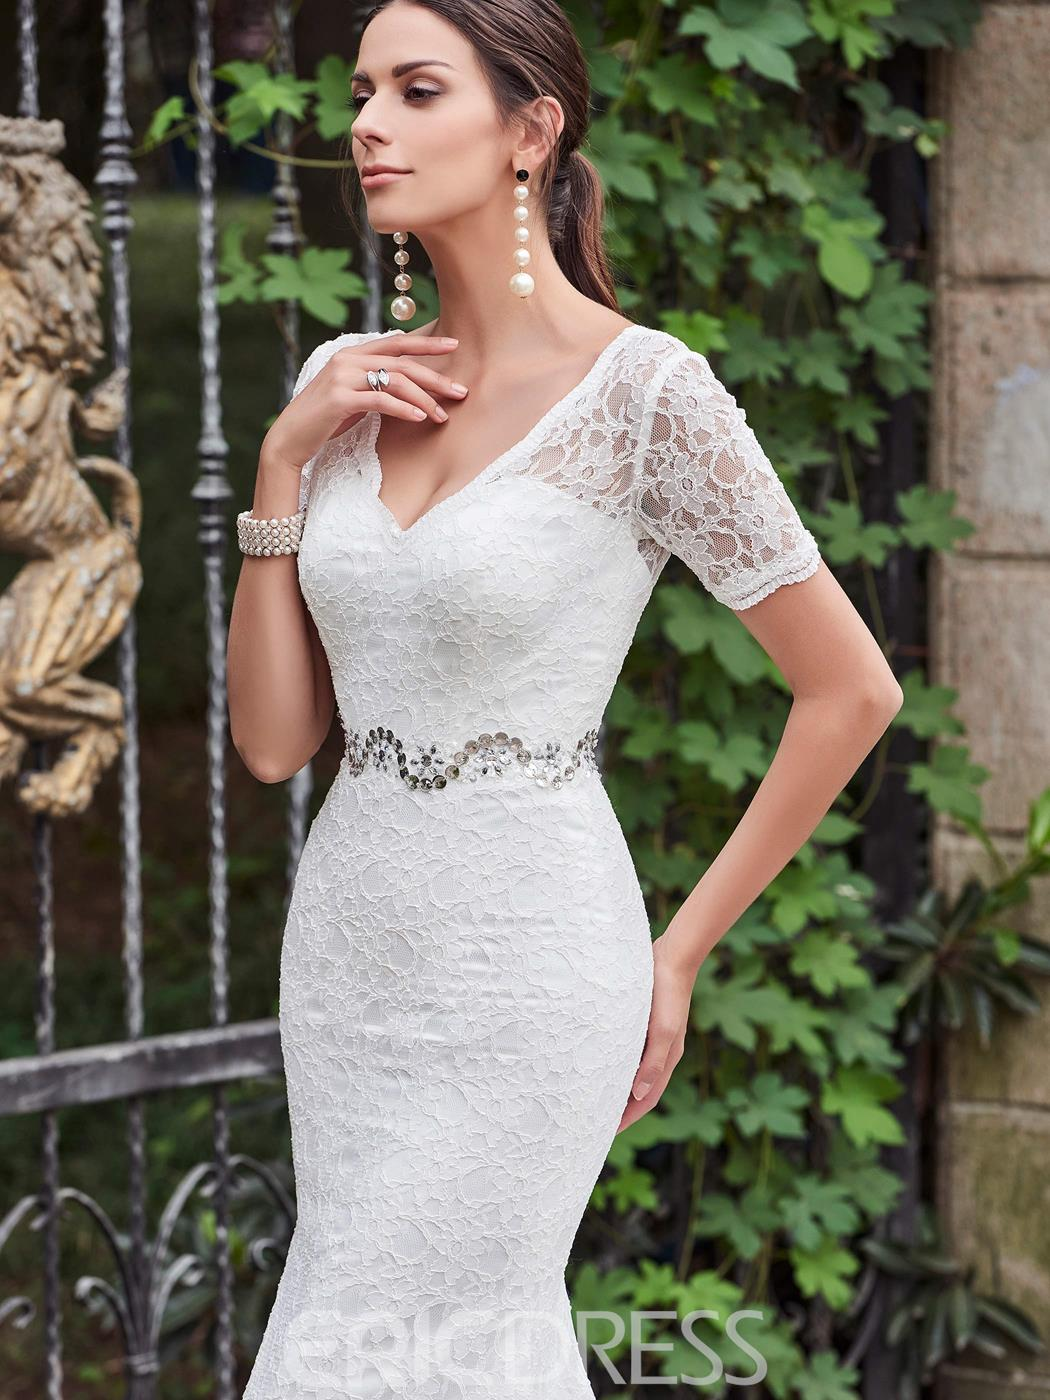 Ericdress High Quality V Neck Short Sleeves Lace Mermaid Wedding Dress